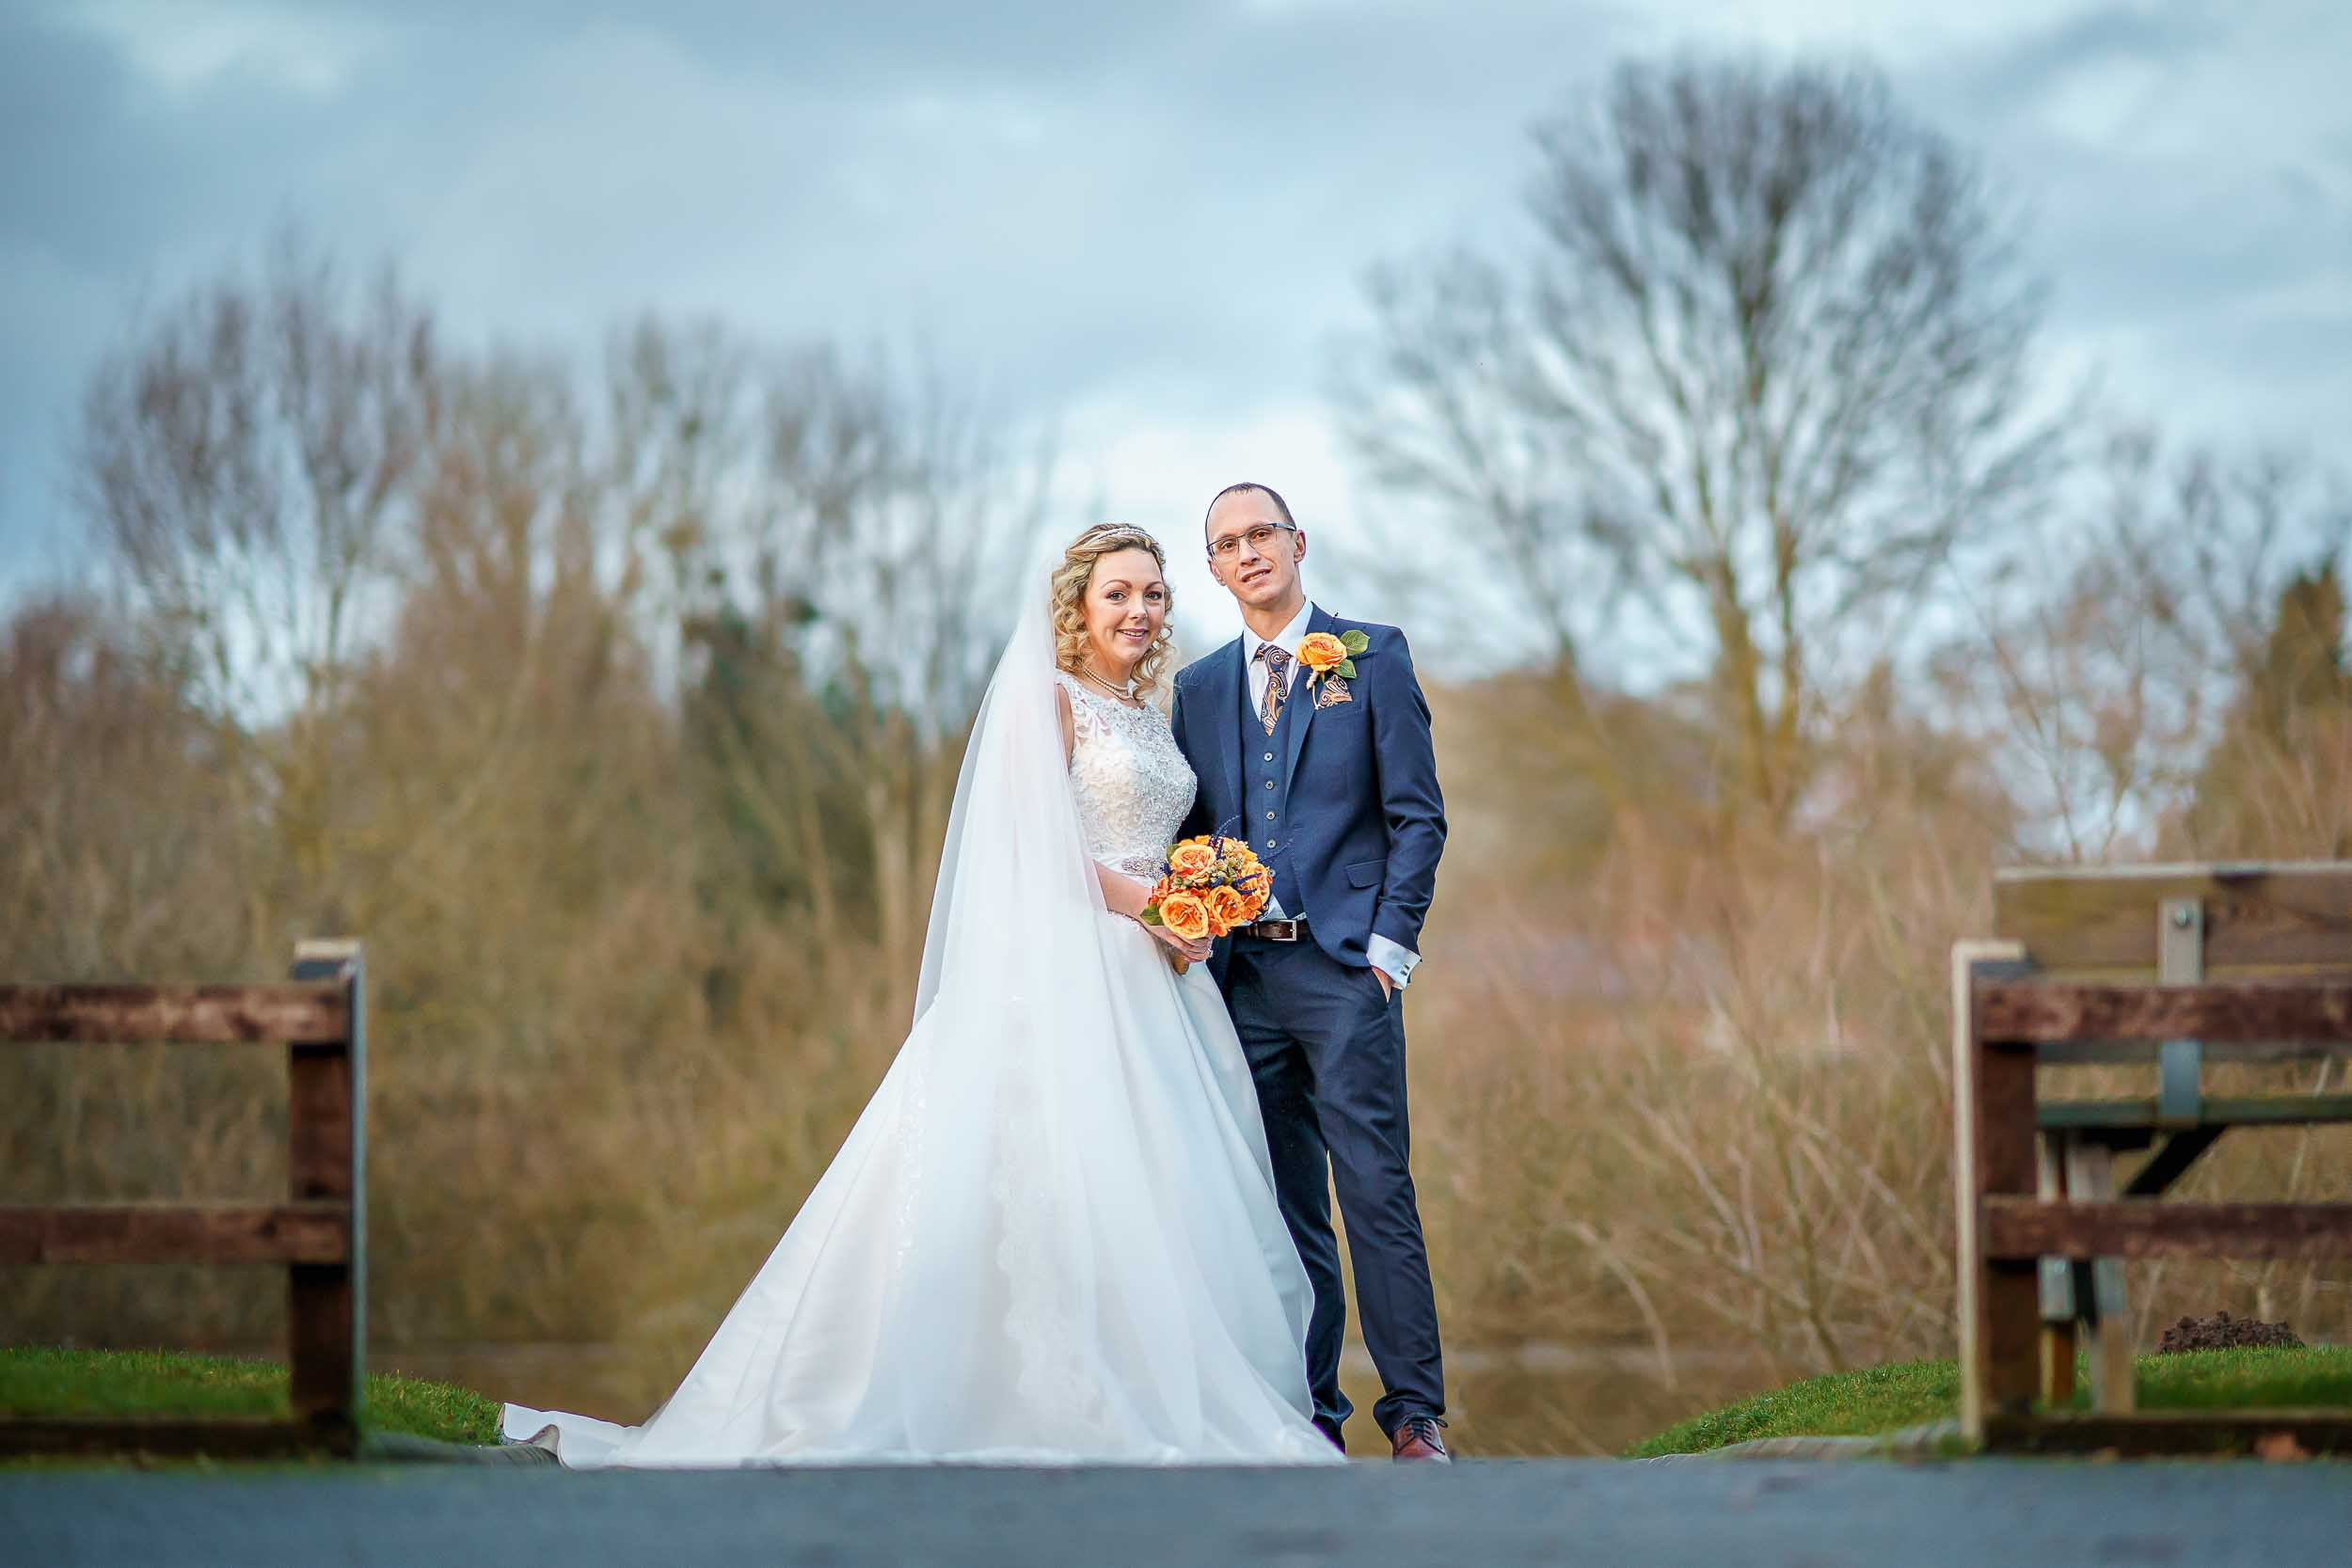 Holt, Fleet, Wedding, Photographer, Worcestershire, Herefordshire, Worcestershire wedding photographer, Holt Fleet wedding photographer,